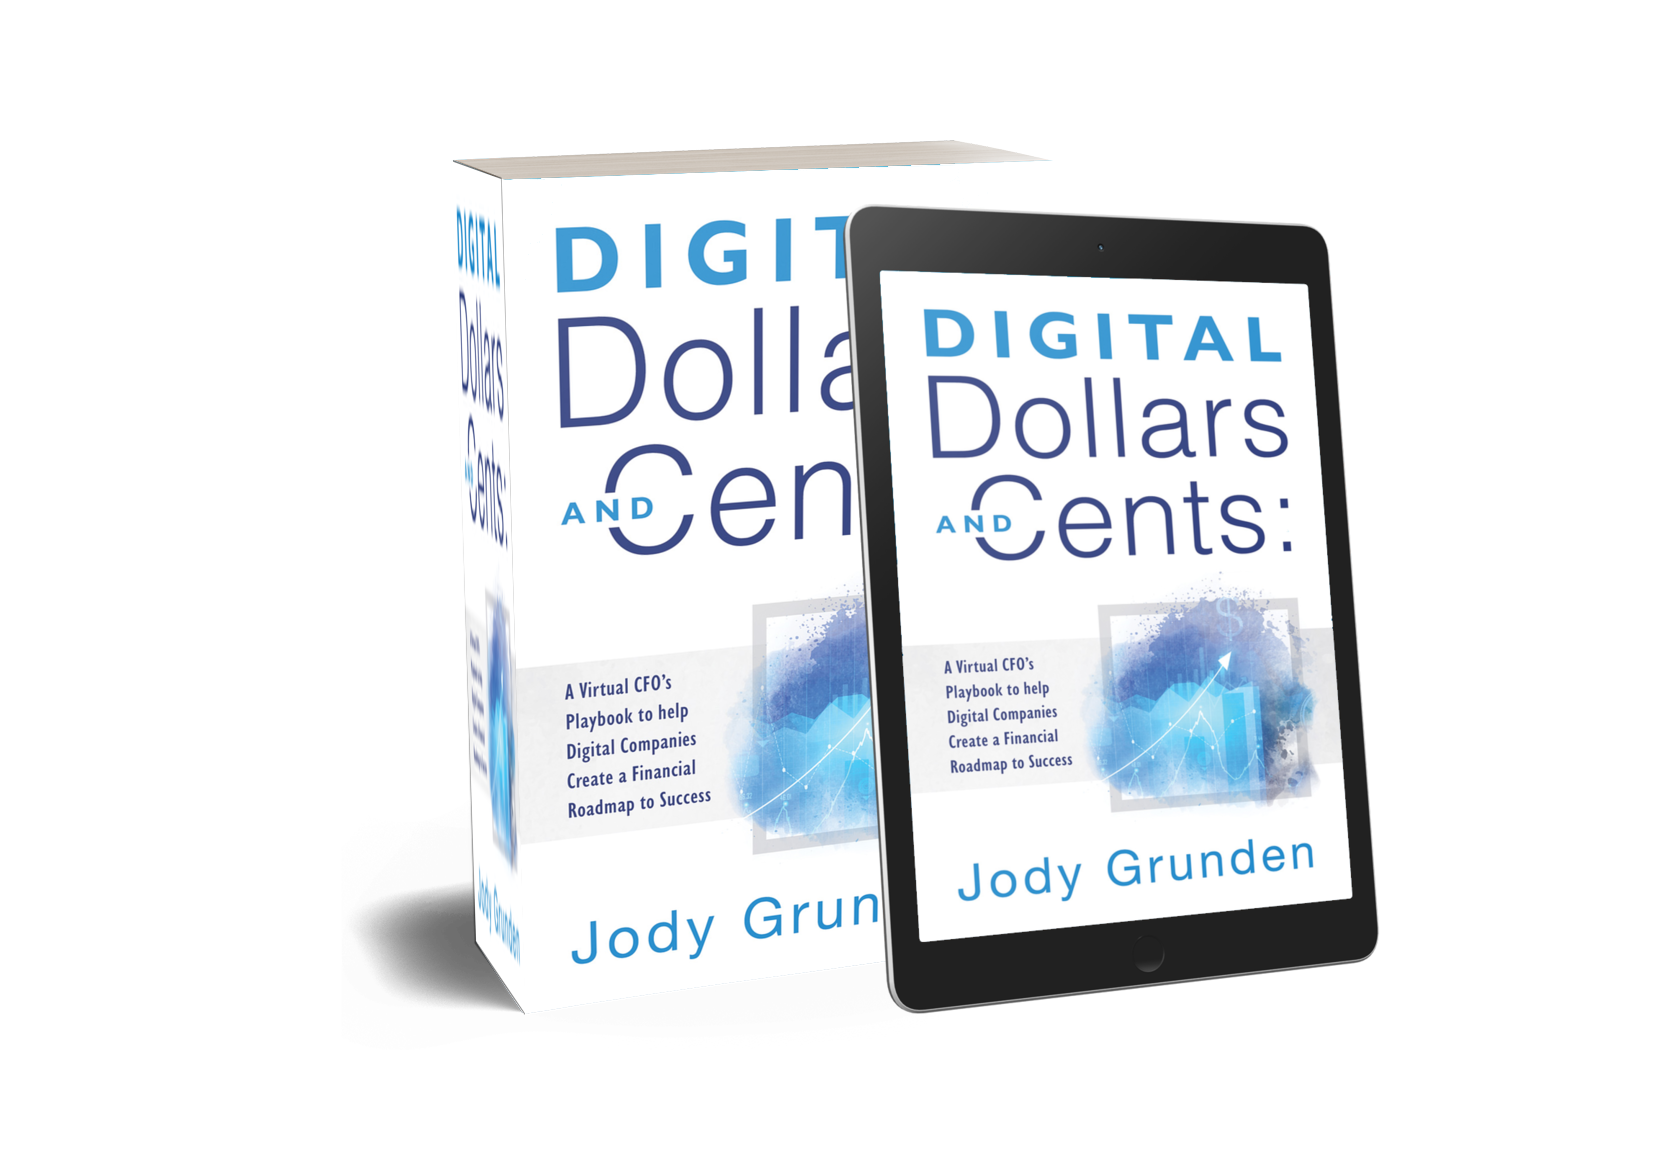 Digital Dollars and Cents